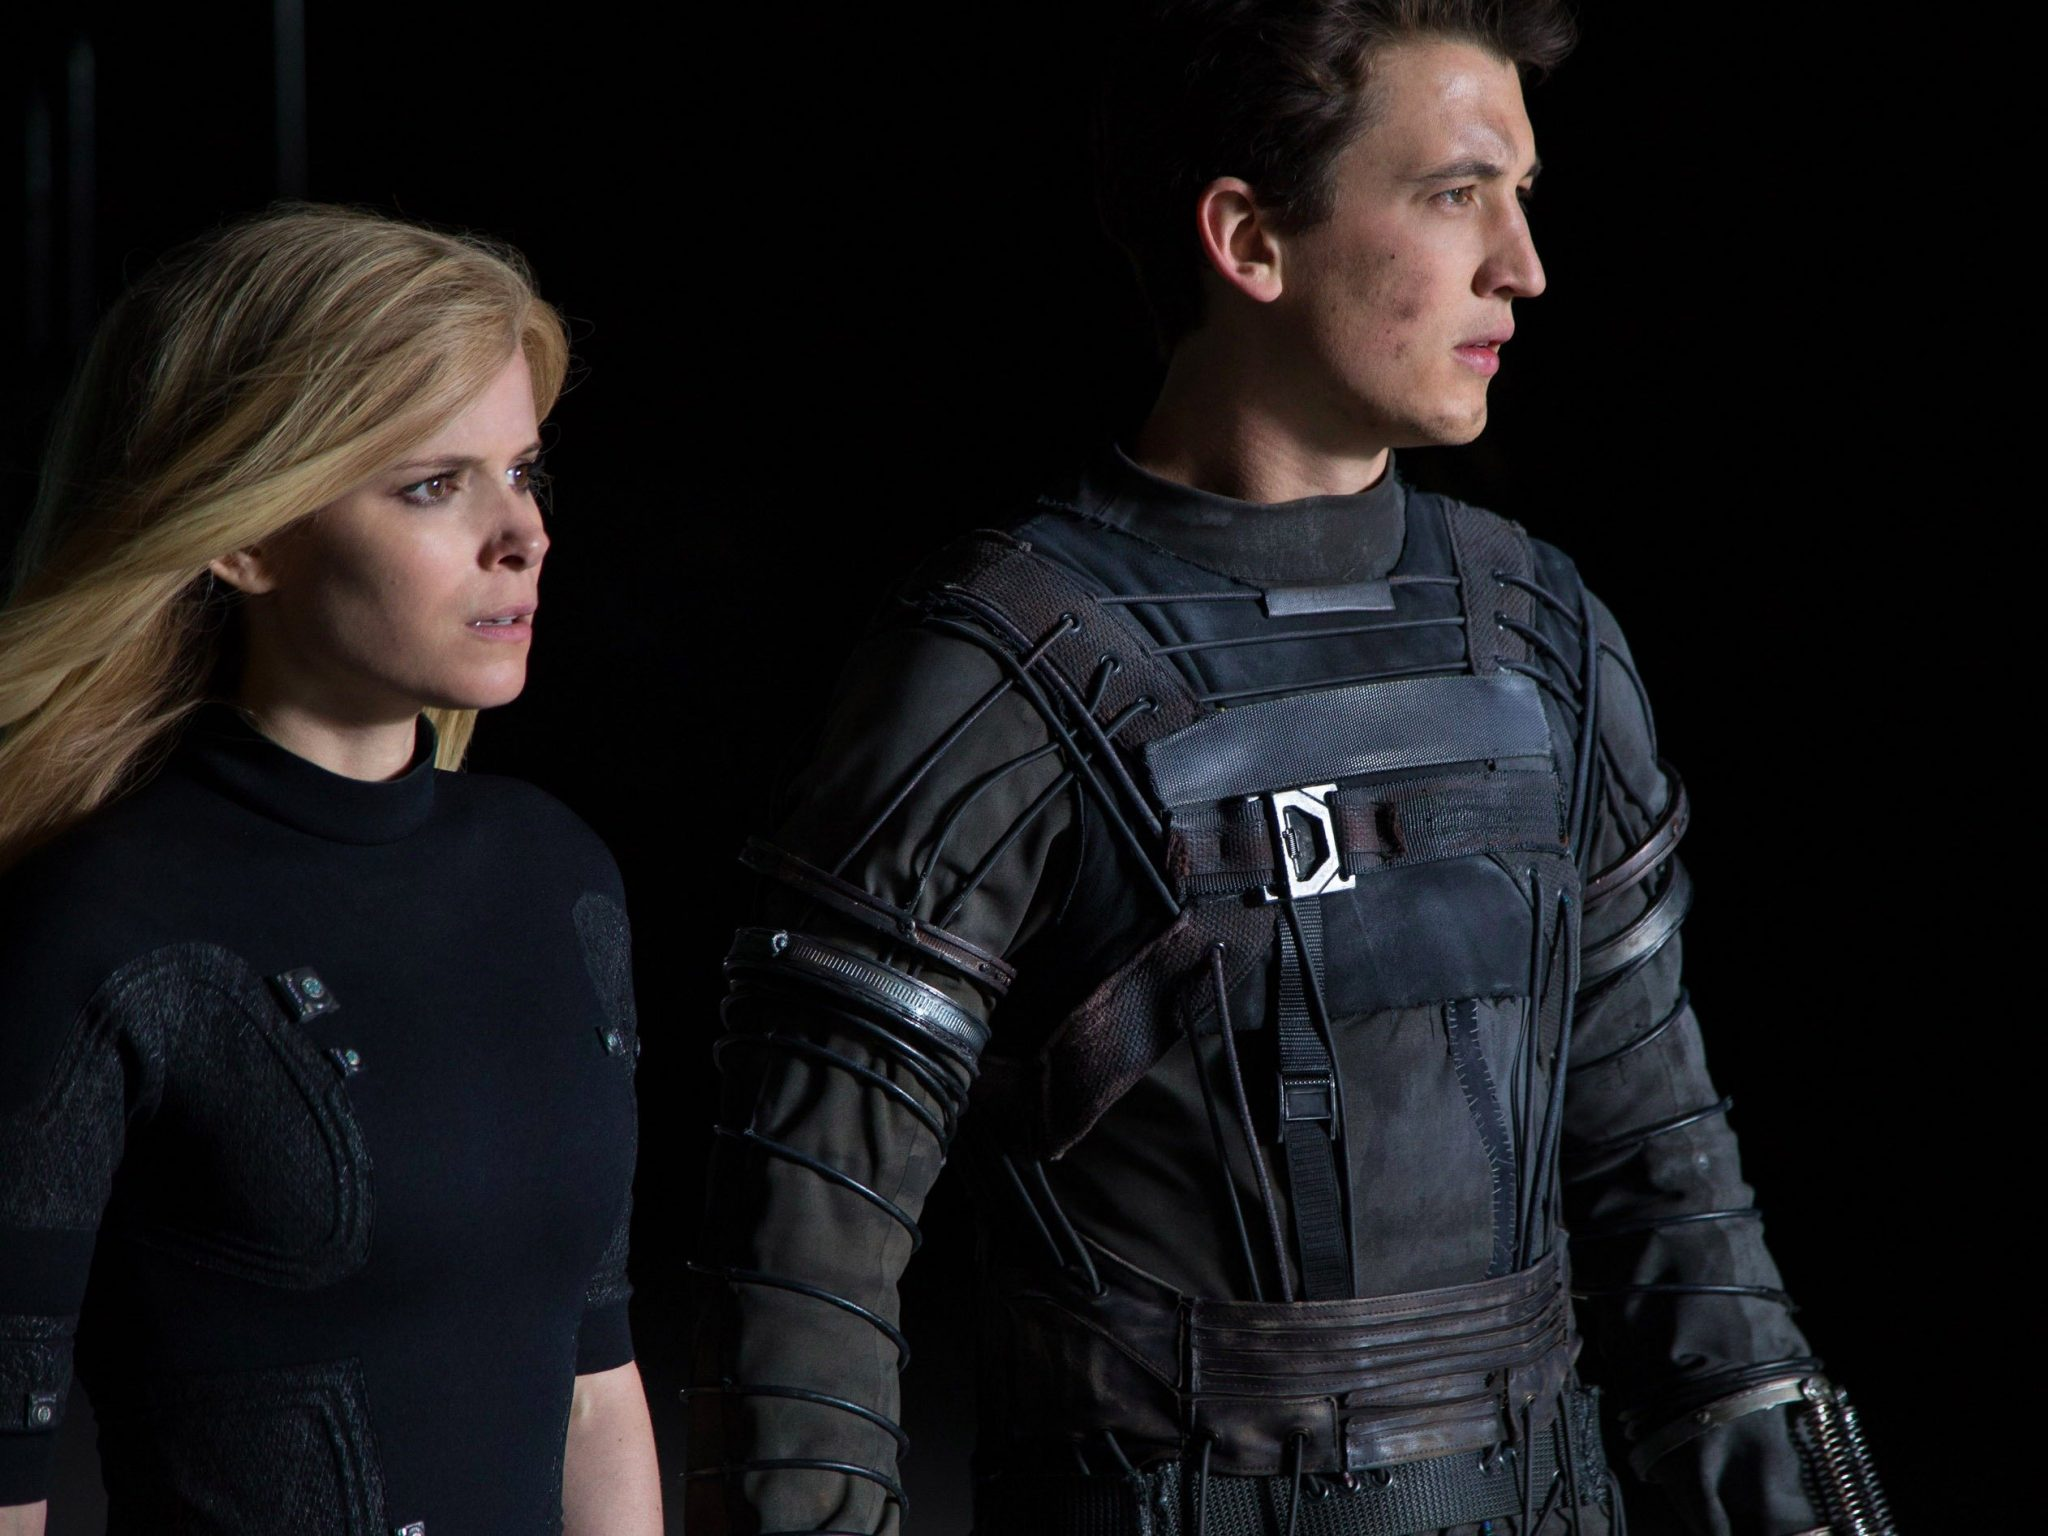 fantastic four review podcast